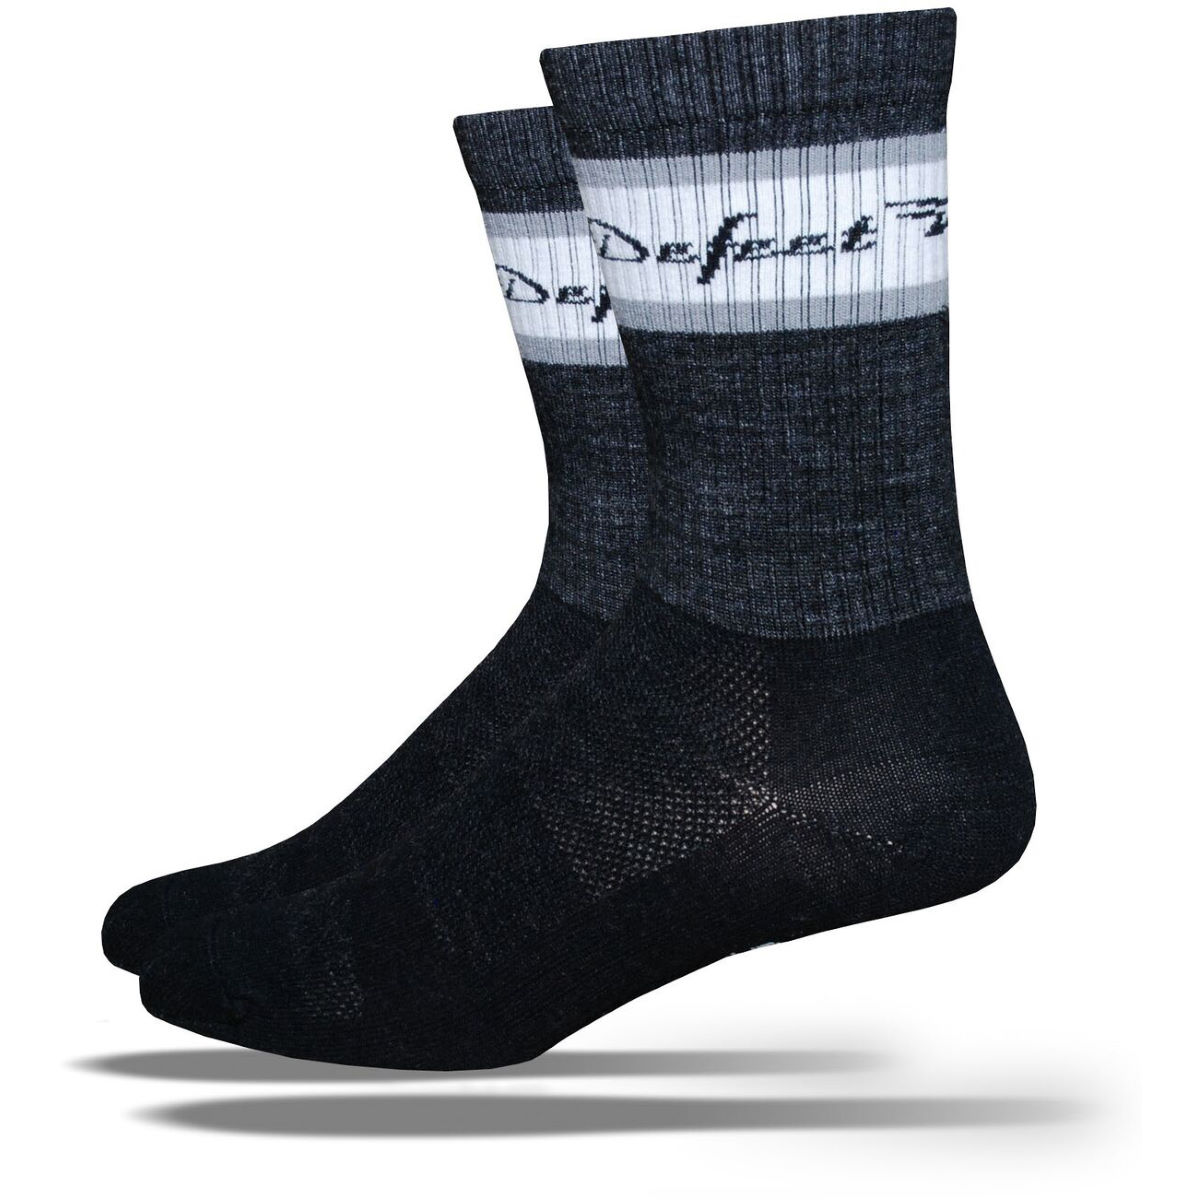 Defeet classico socks cycling socks charcoal 2017 def00803